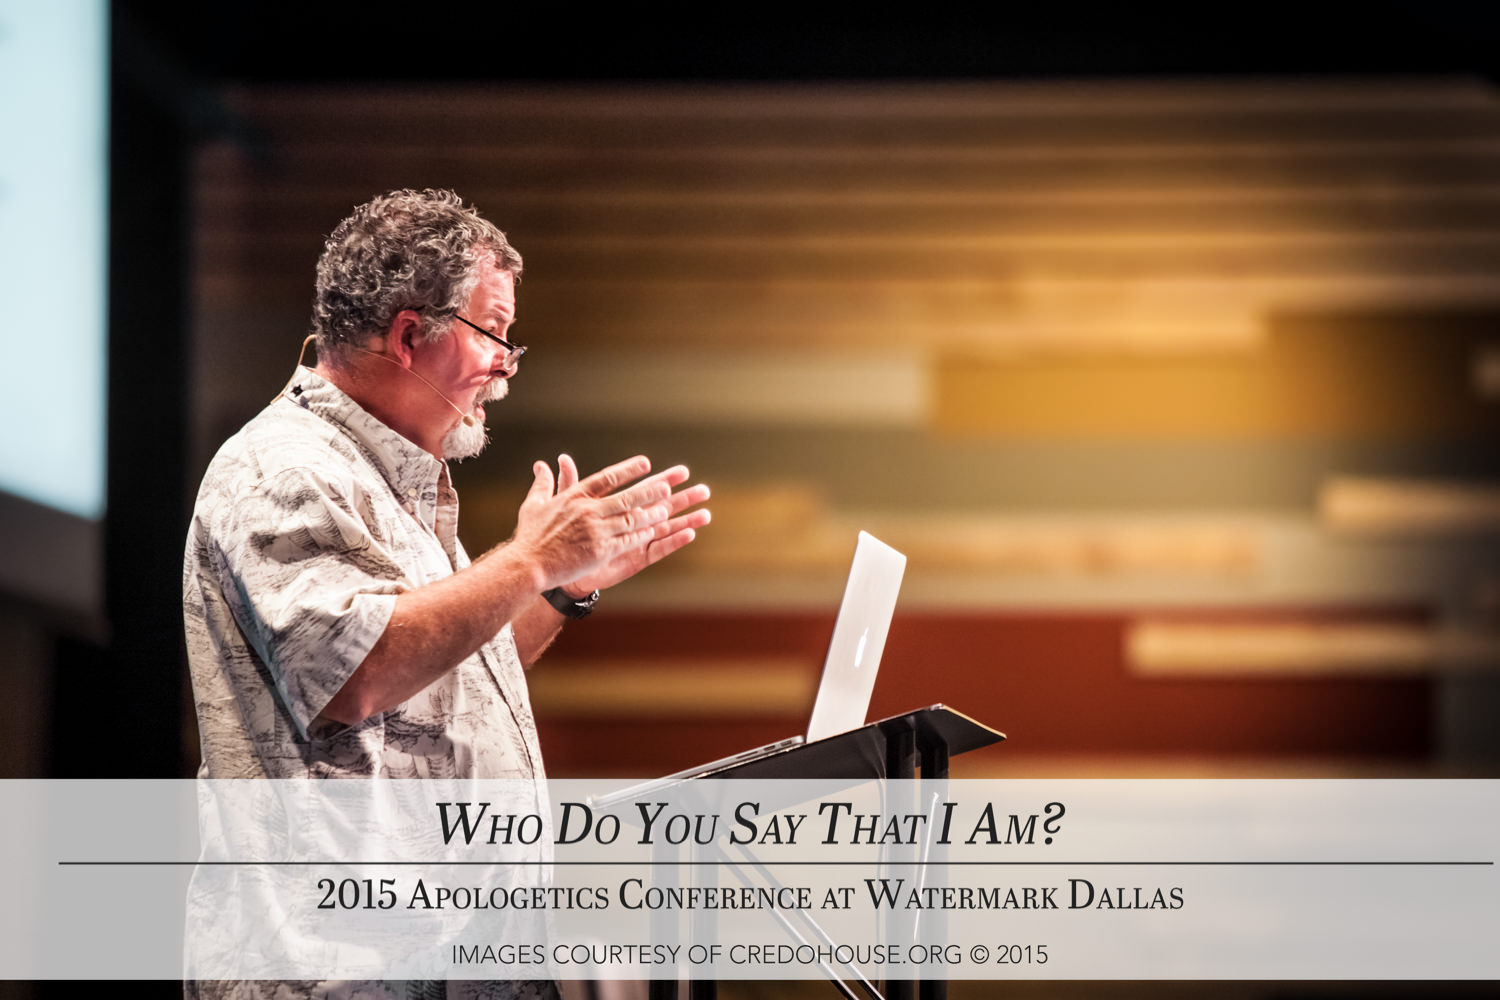 watermark-who-do-you-say-that-i-am-3167